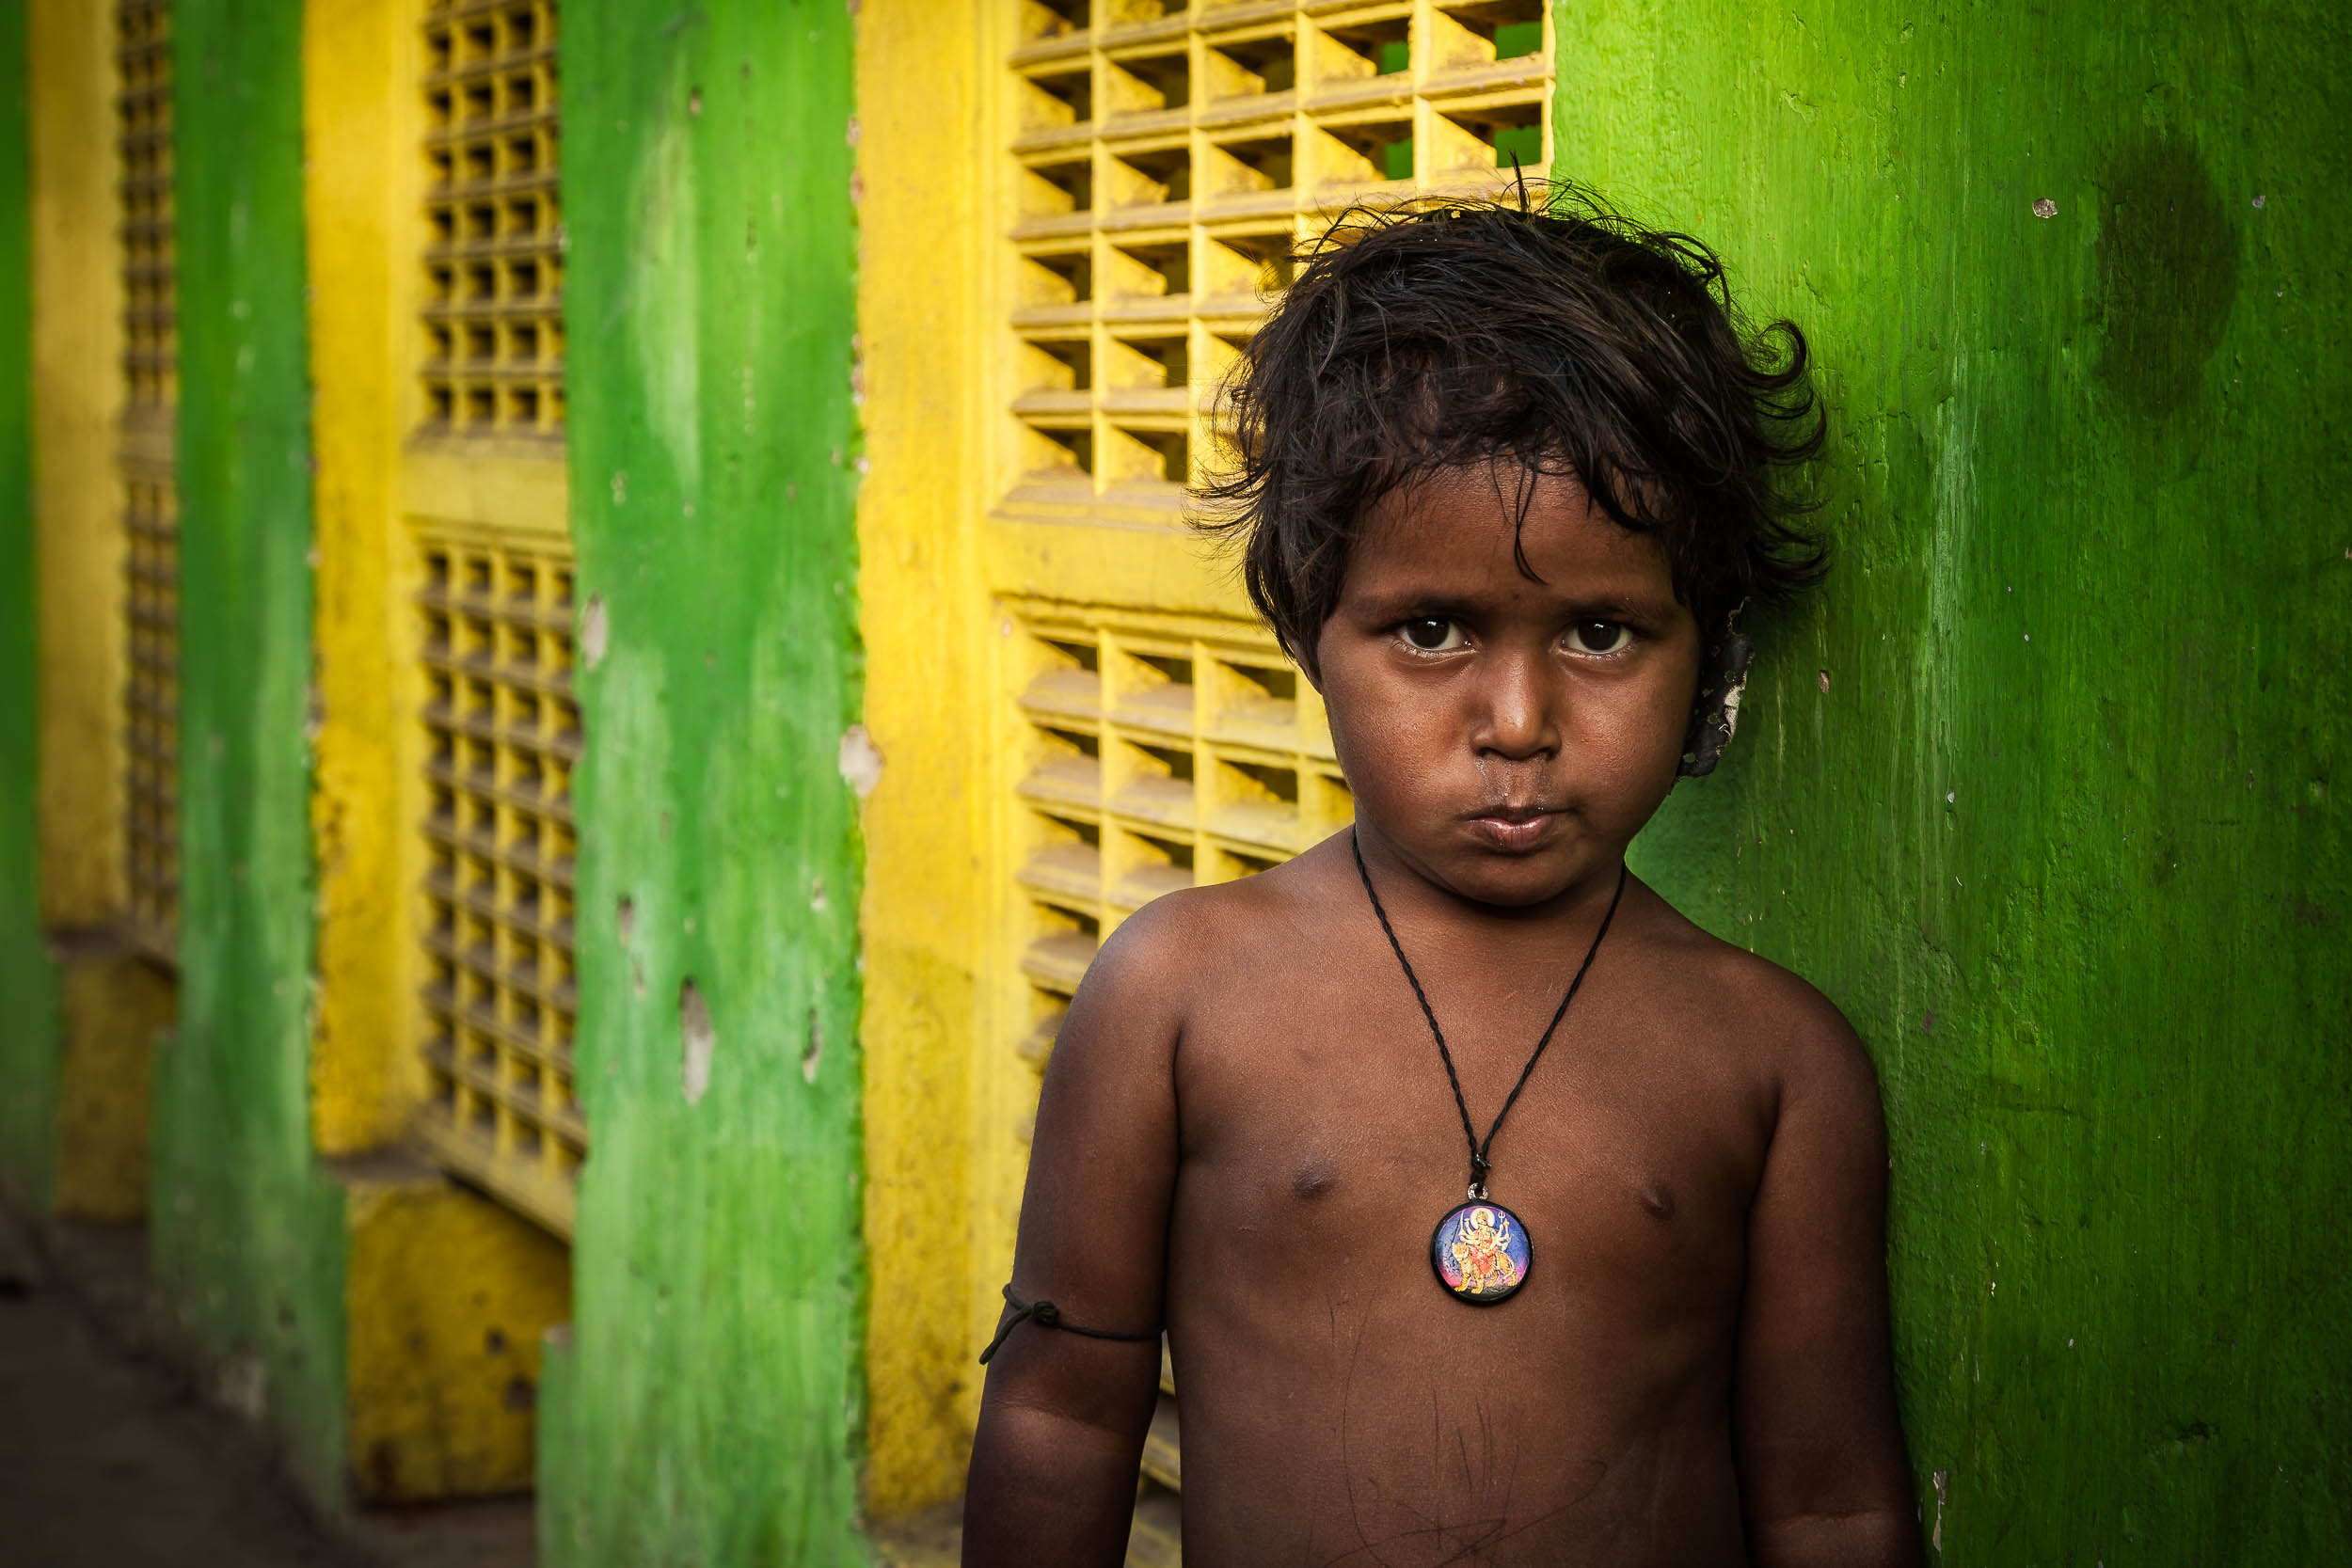 A bright    green and yellow wall    provides a colorful background for this    portrait    of a    child    at a    Kolkata    railway station in    India   .